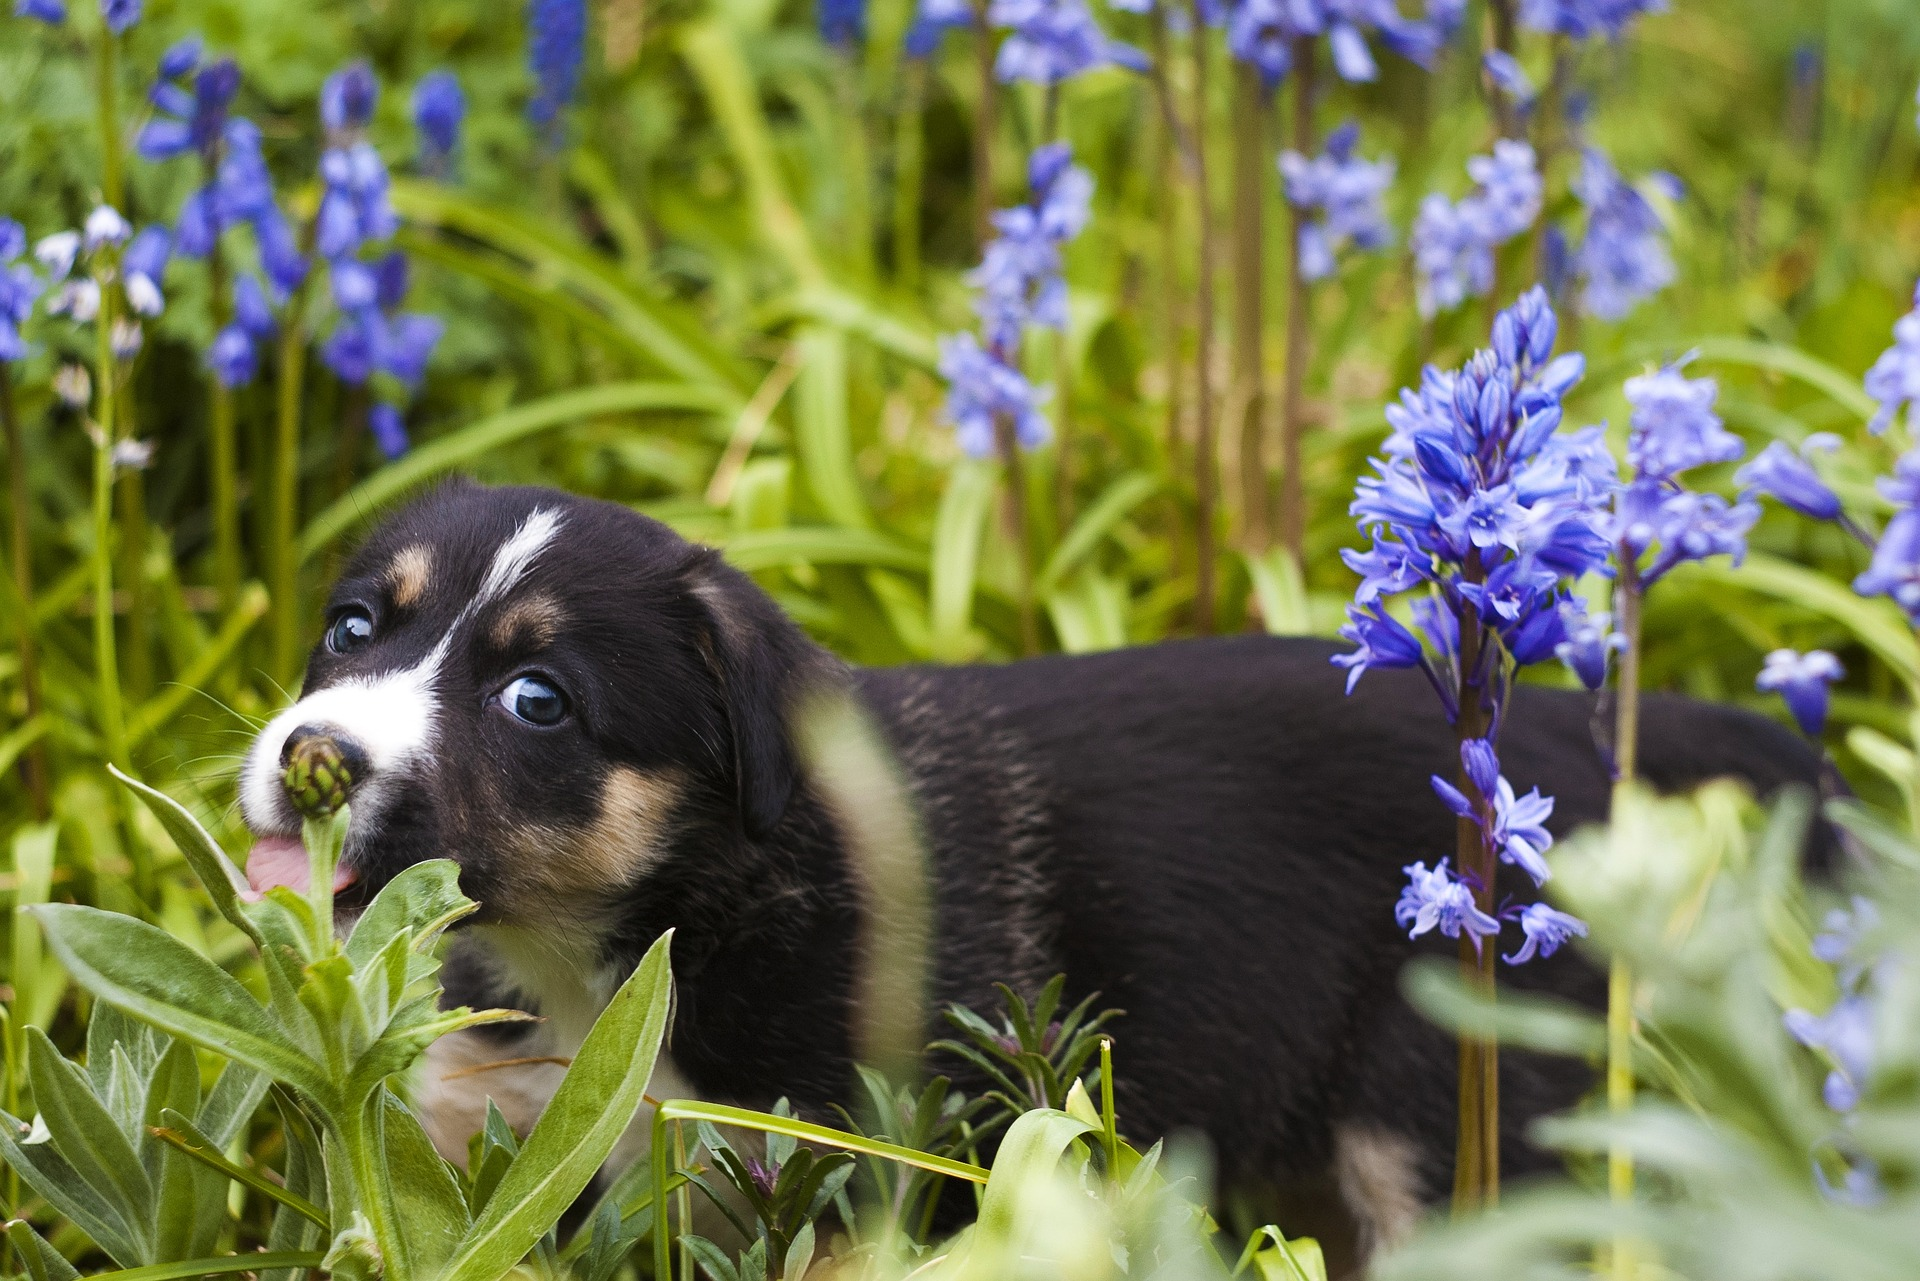 Puppy in a sensory garden for dogs